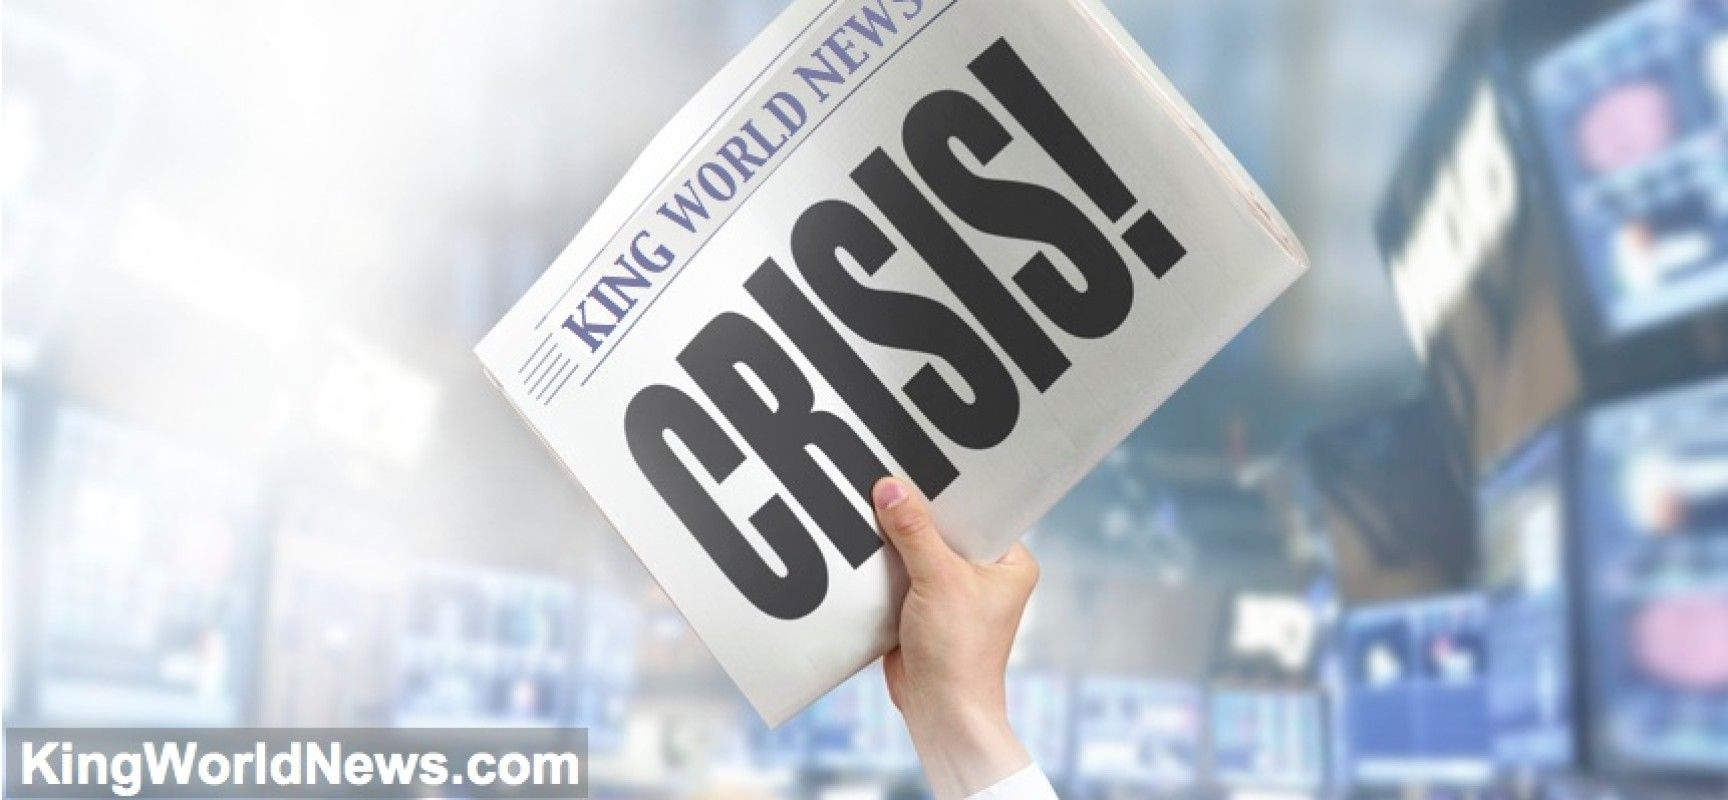 Mainstream Media Lying To The Public As The World Faces Most Dangerous Crisis In History Feb 19 2015